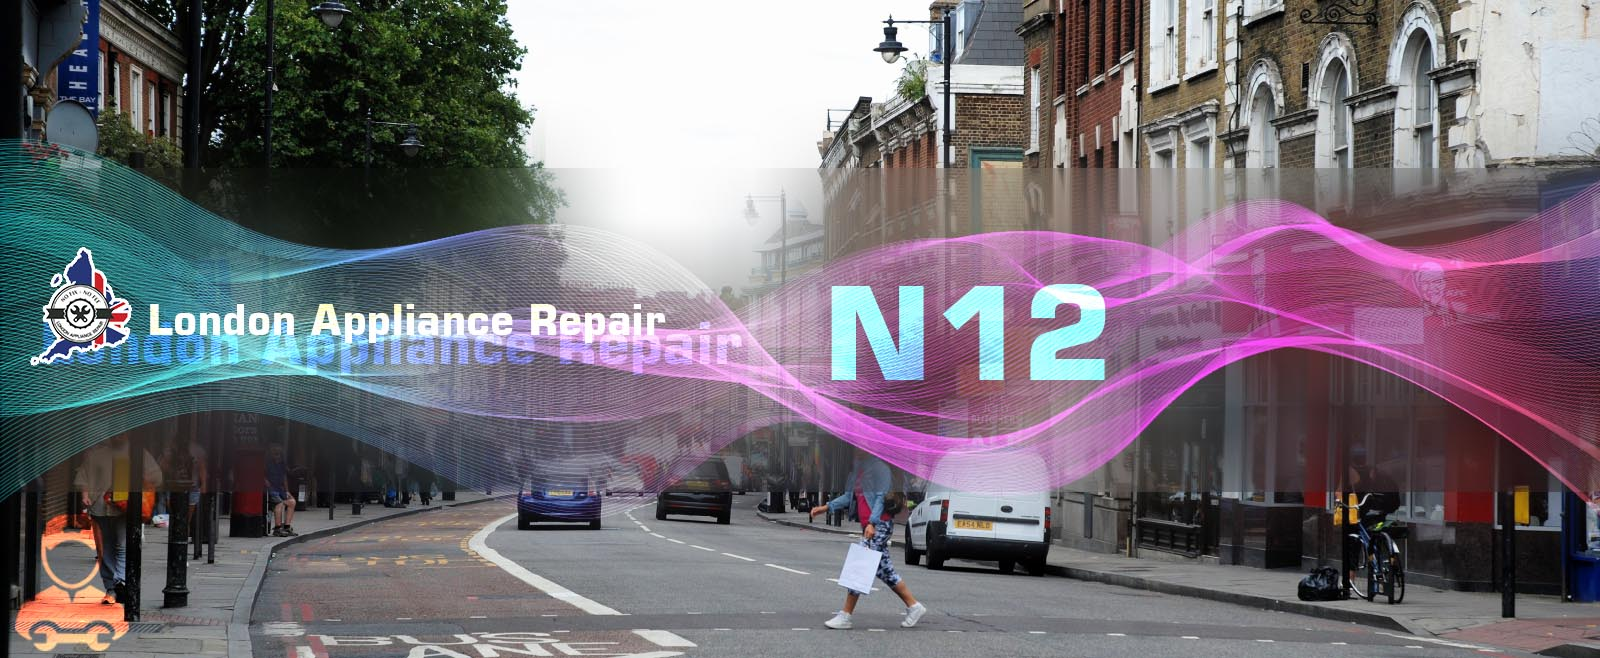 N12 domestic appliance repair london